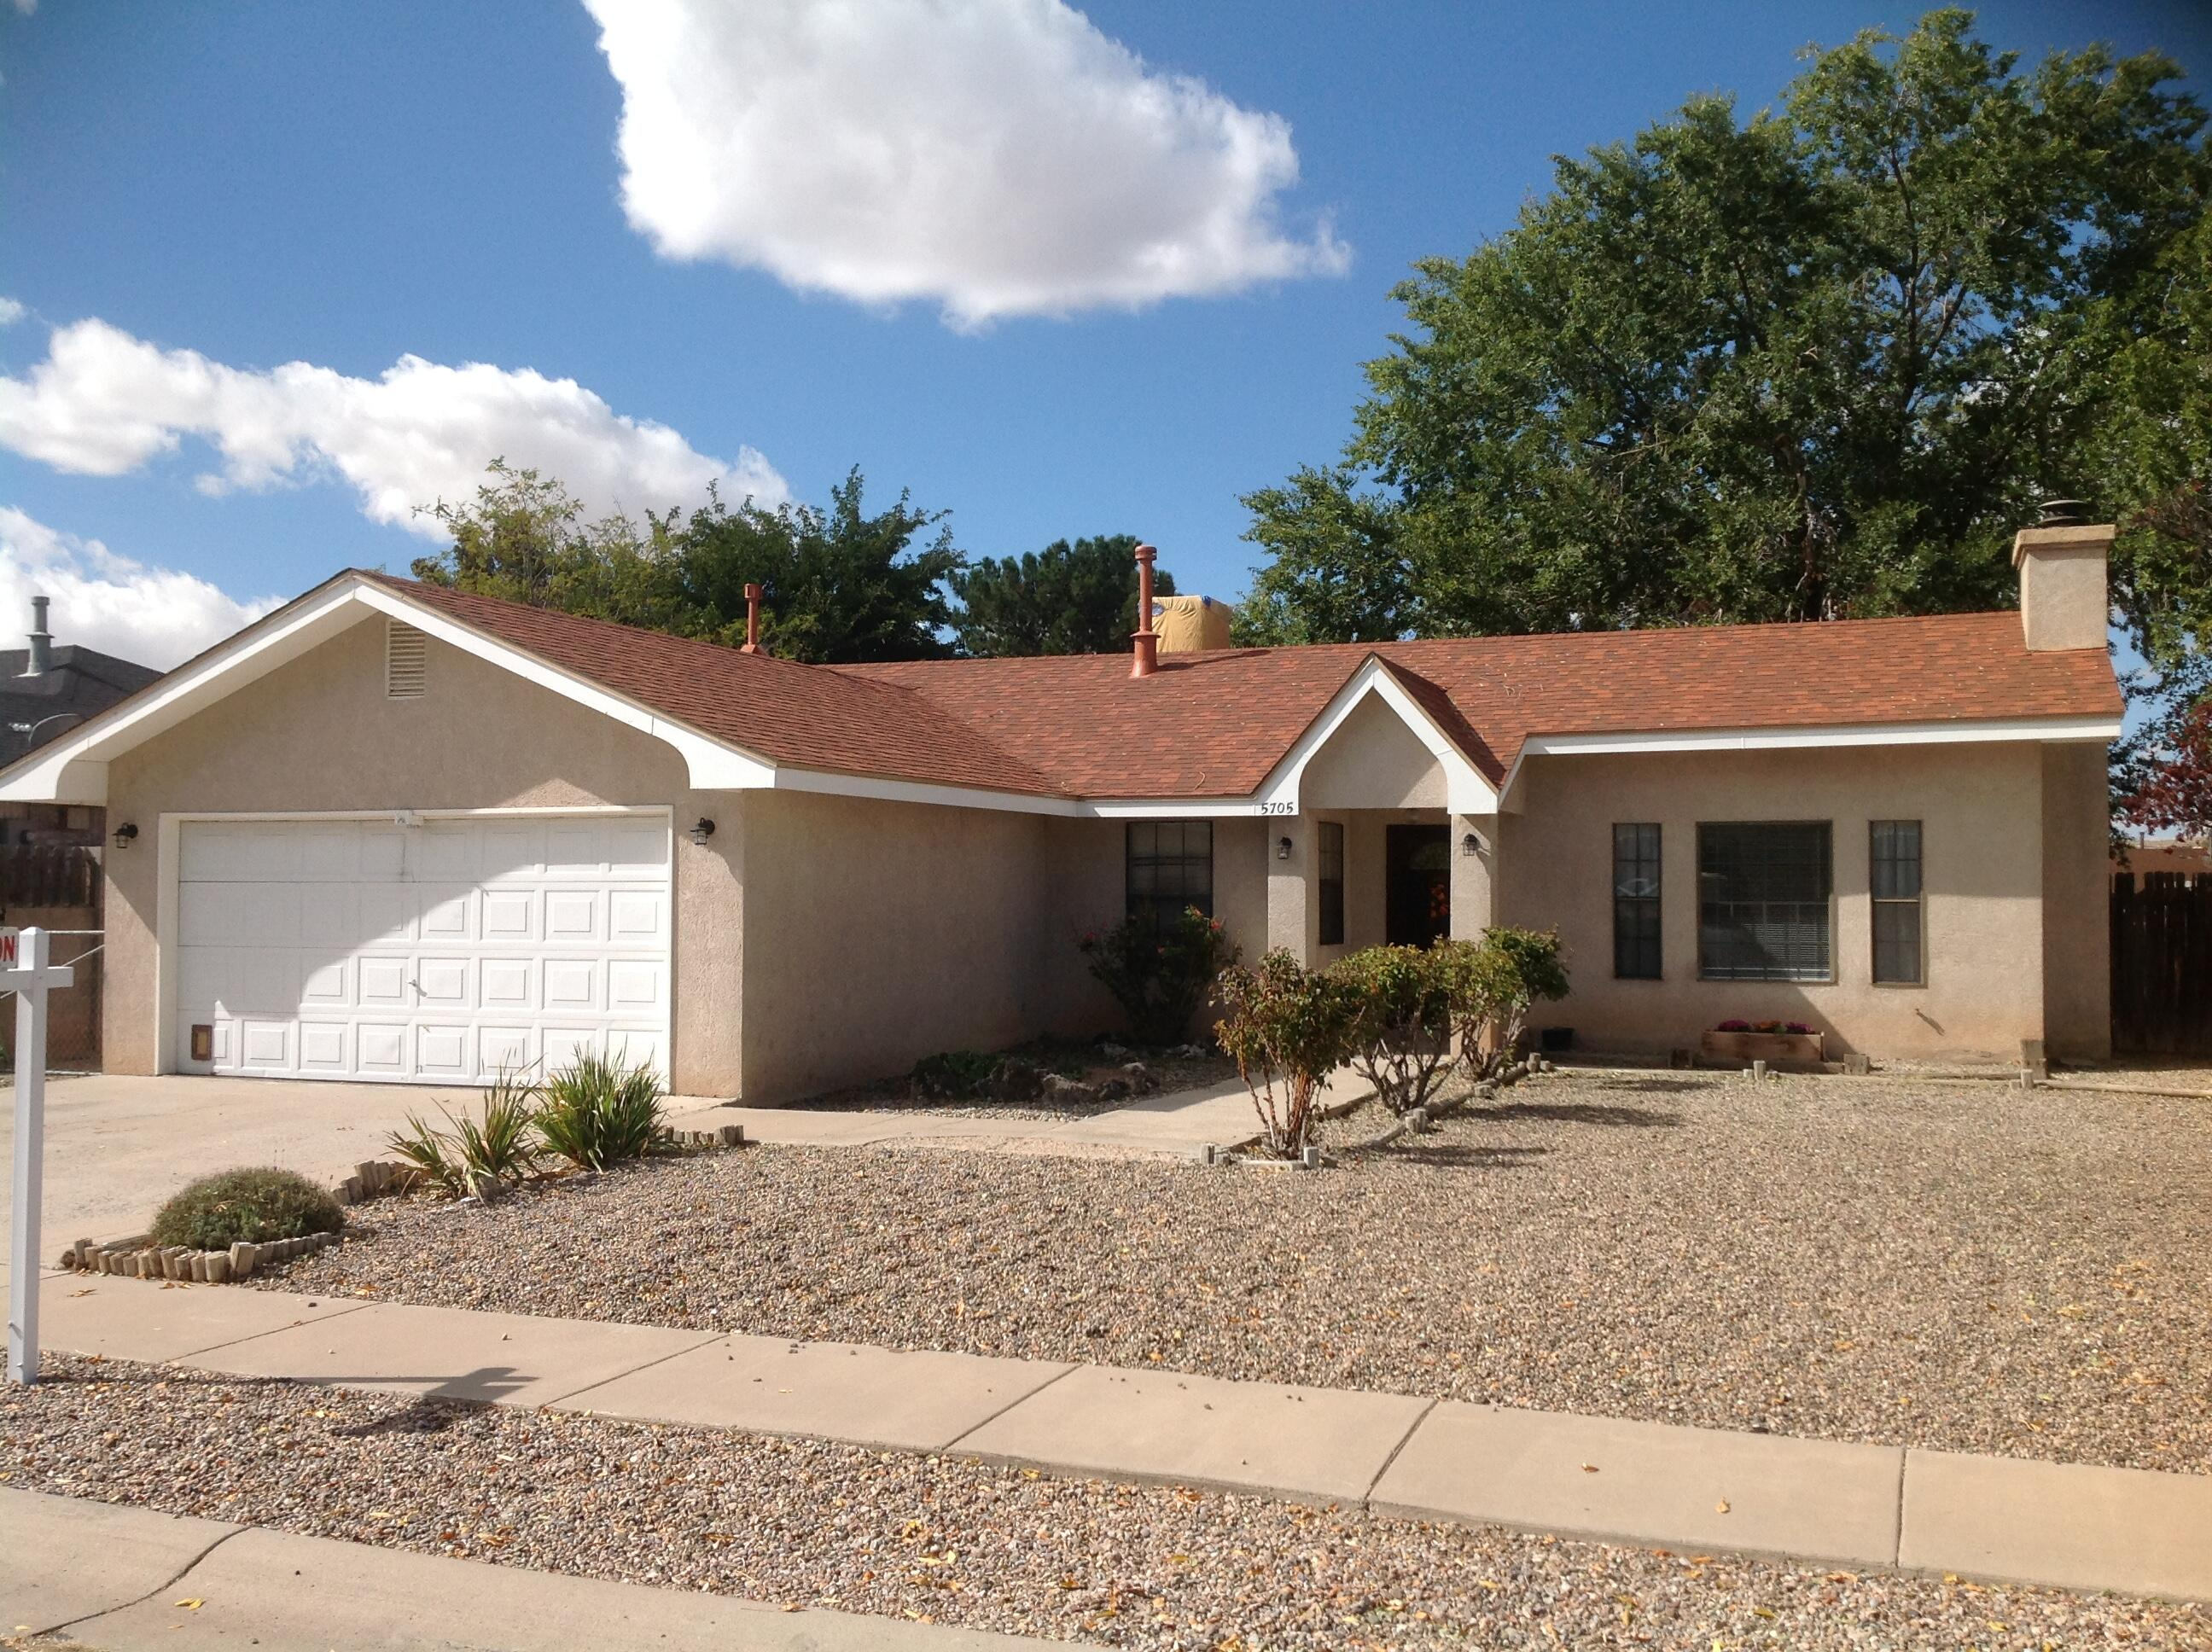 Excellent Taylor Ranch Home.  New roof, new water heater, new flooring including new carpet and kitchen vinyl.  This adorable home has low grounds maintenance, fresh paint and is move in ready.  The third bedroom sits off of the primary and second bedroom areas for a perfect office or in-law suite.  All offers will be considered and reviewed on Wednesday evening, October 27th.